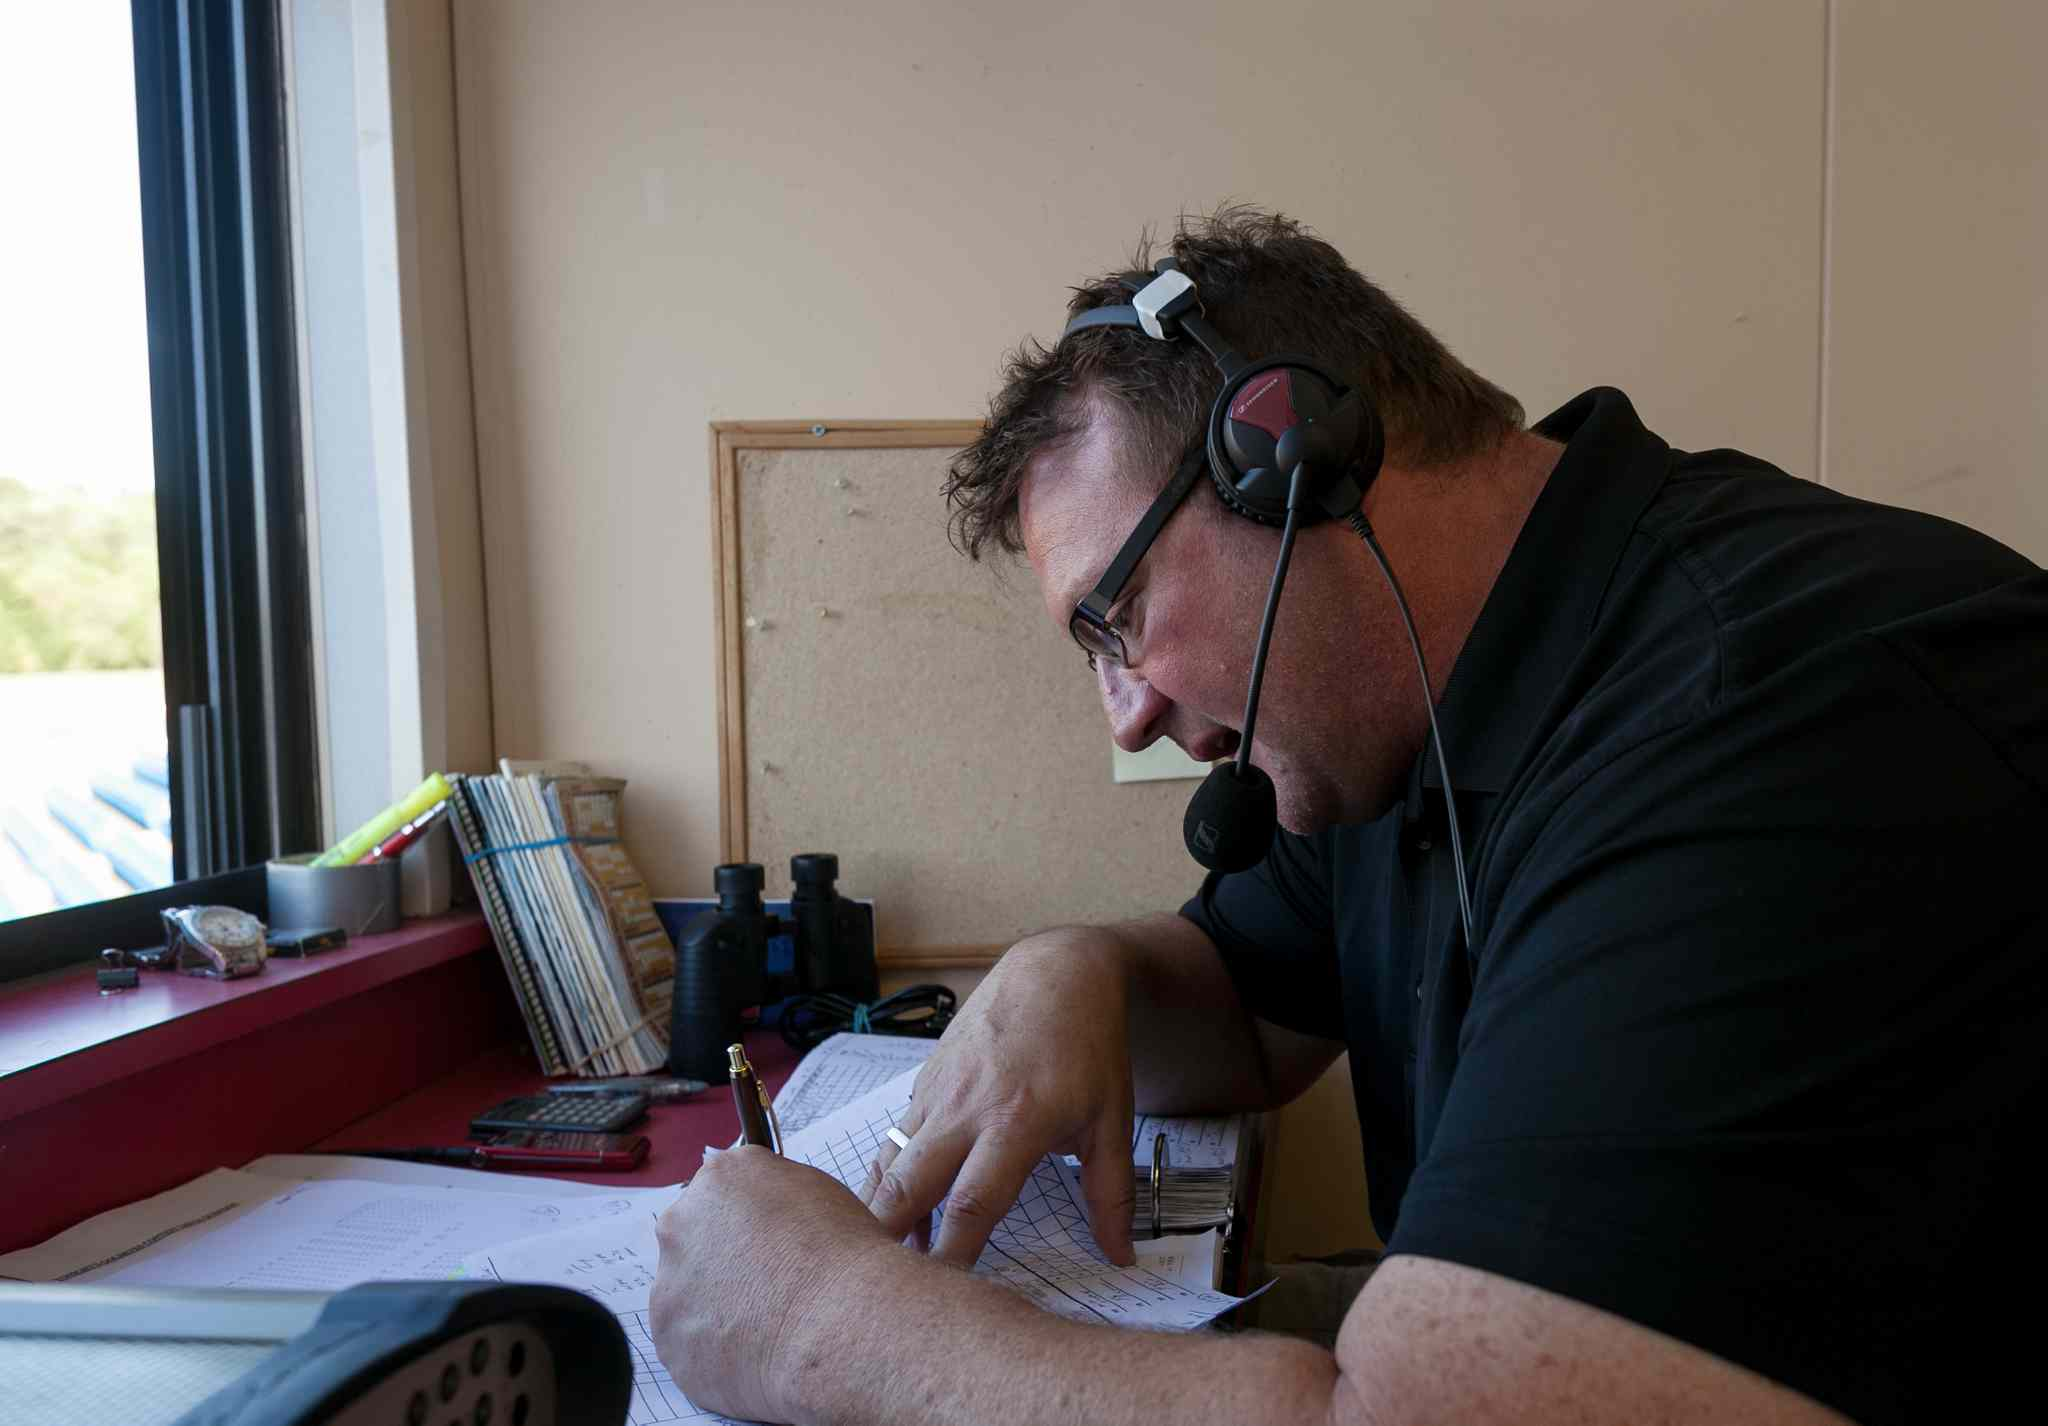 Paul Edmonds has been a fixture on Winnipeg radio for the last 19 years as the voice of the Winnipeg Goldeyes. He will take over the play-by-play duties for the Winnipeg Jets this season.